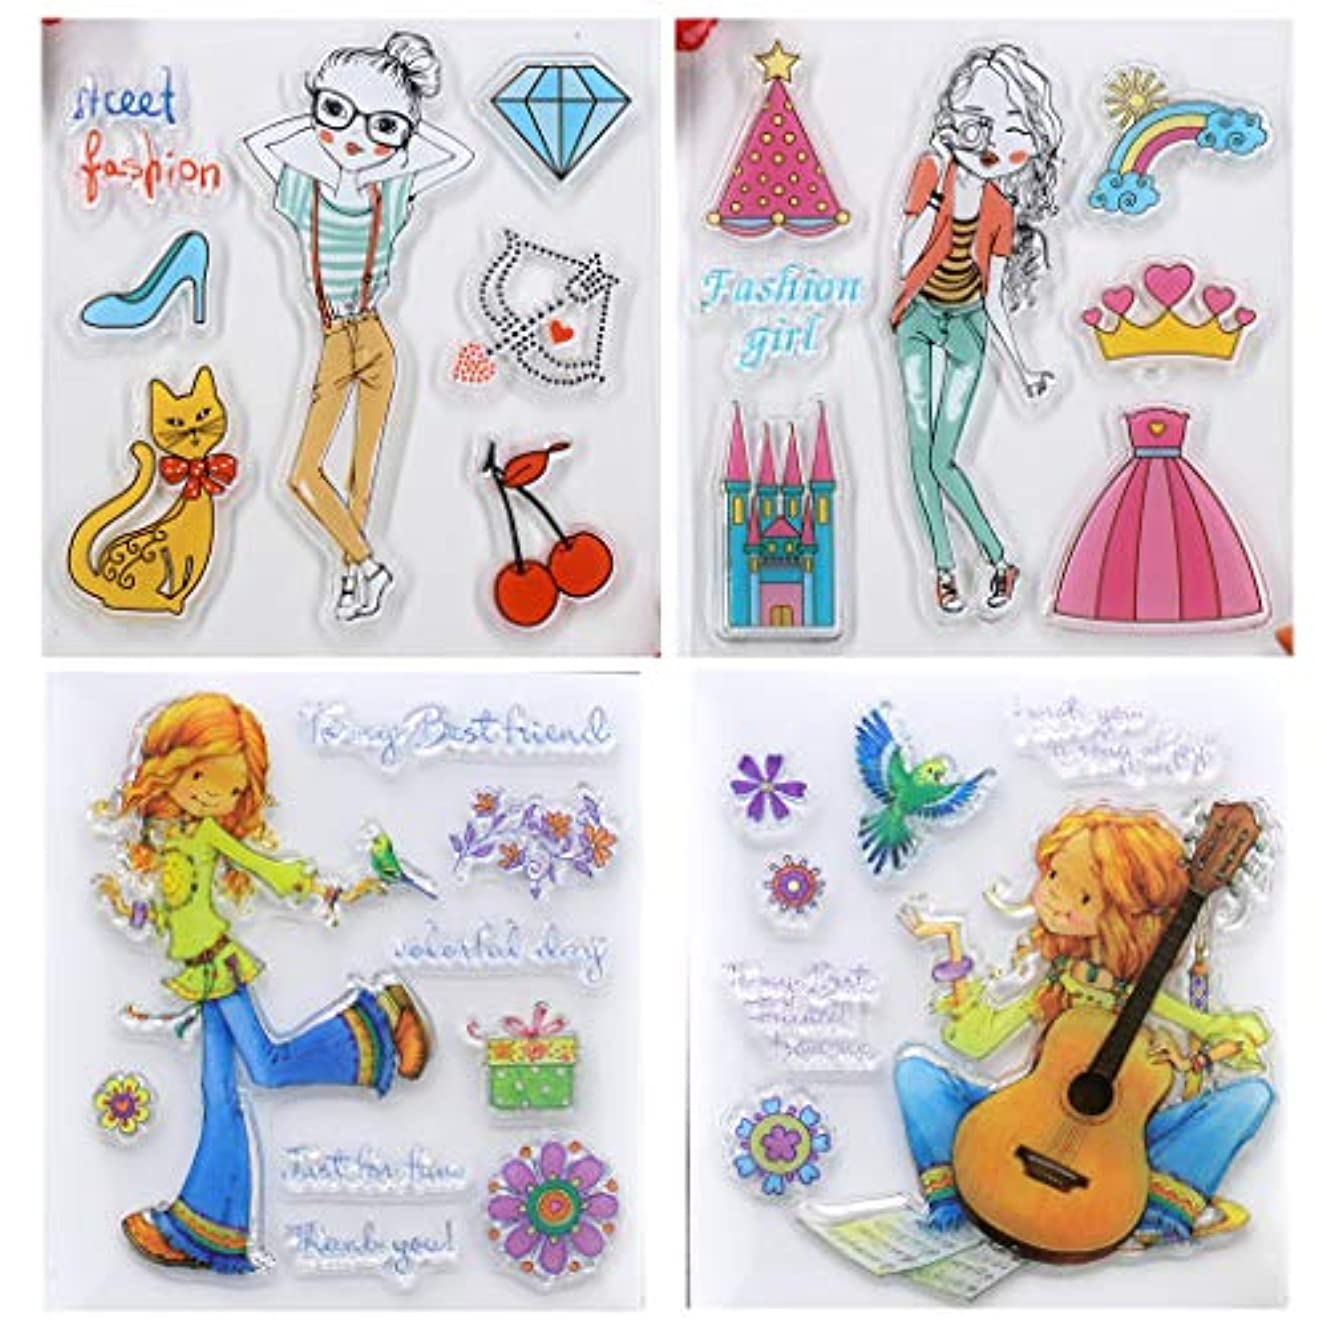 Kwan Crafts 4 Sheets Different Style Fashion Girl Flowers Bird Cat Guitar Clear Stamps for Card Making Decoration and DIY Scrapbooking